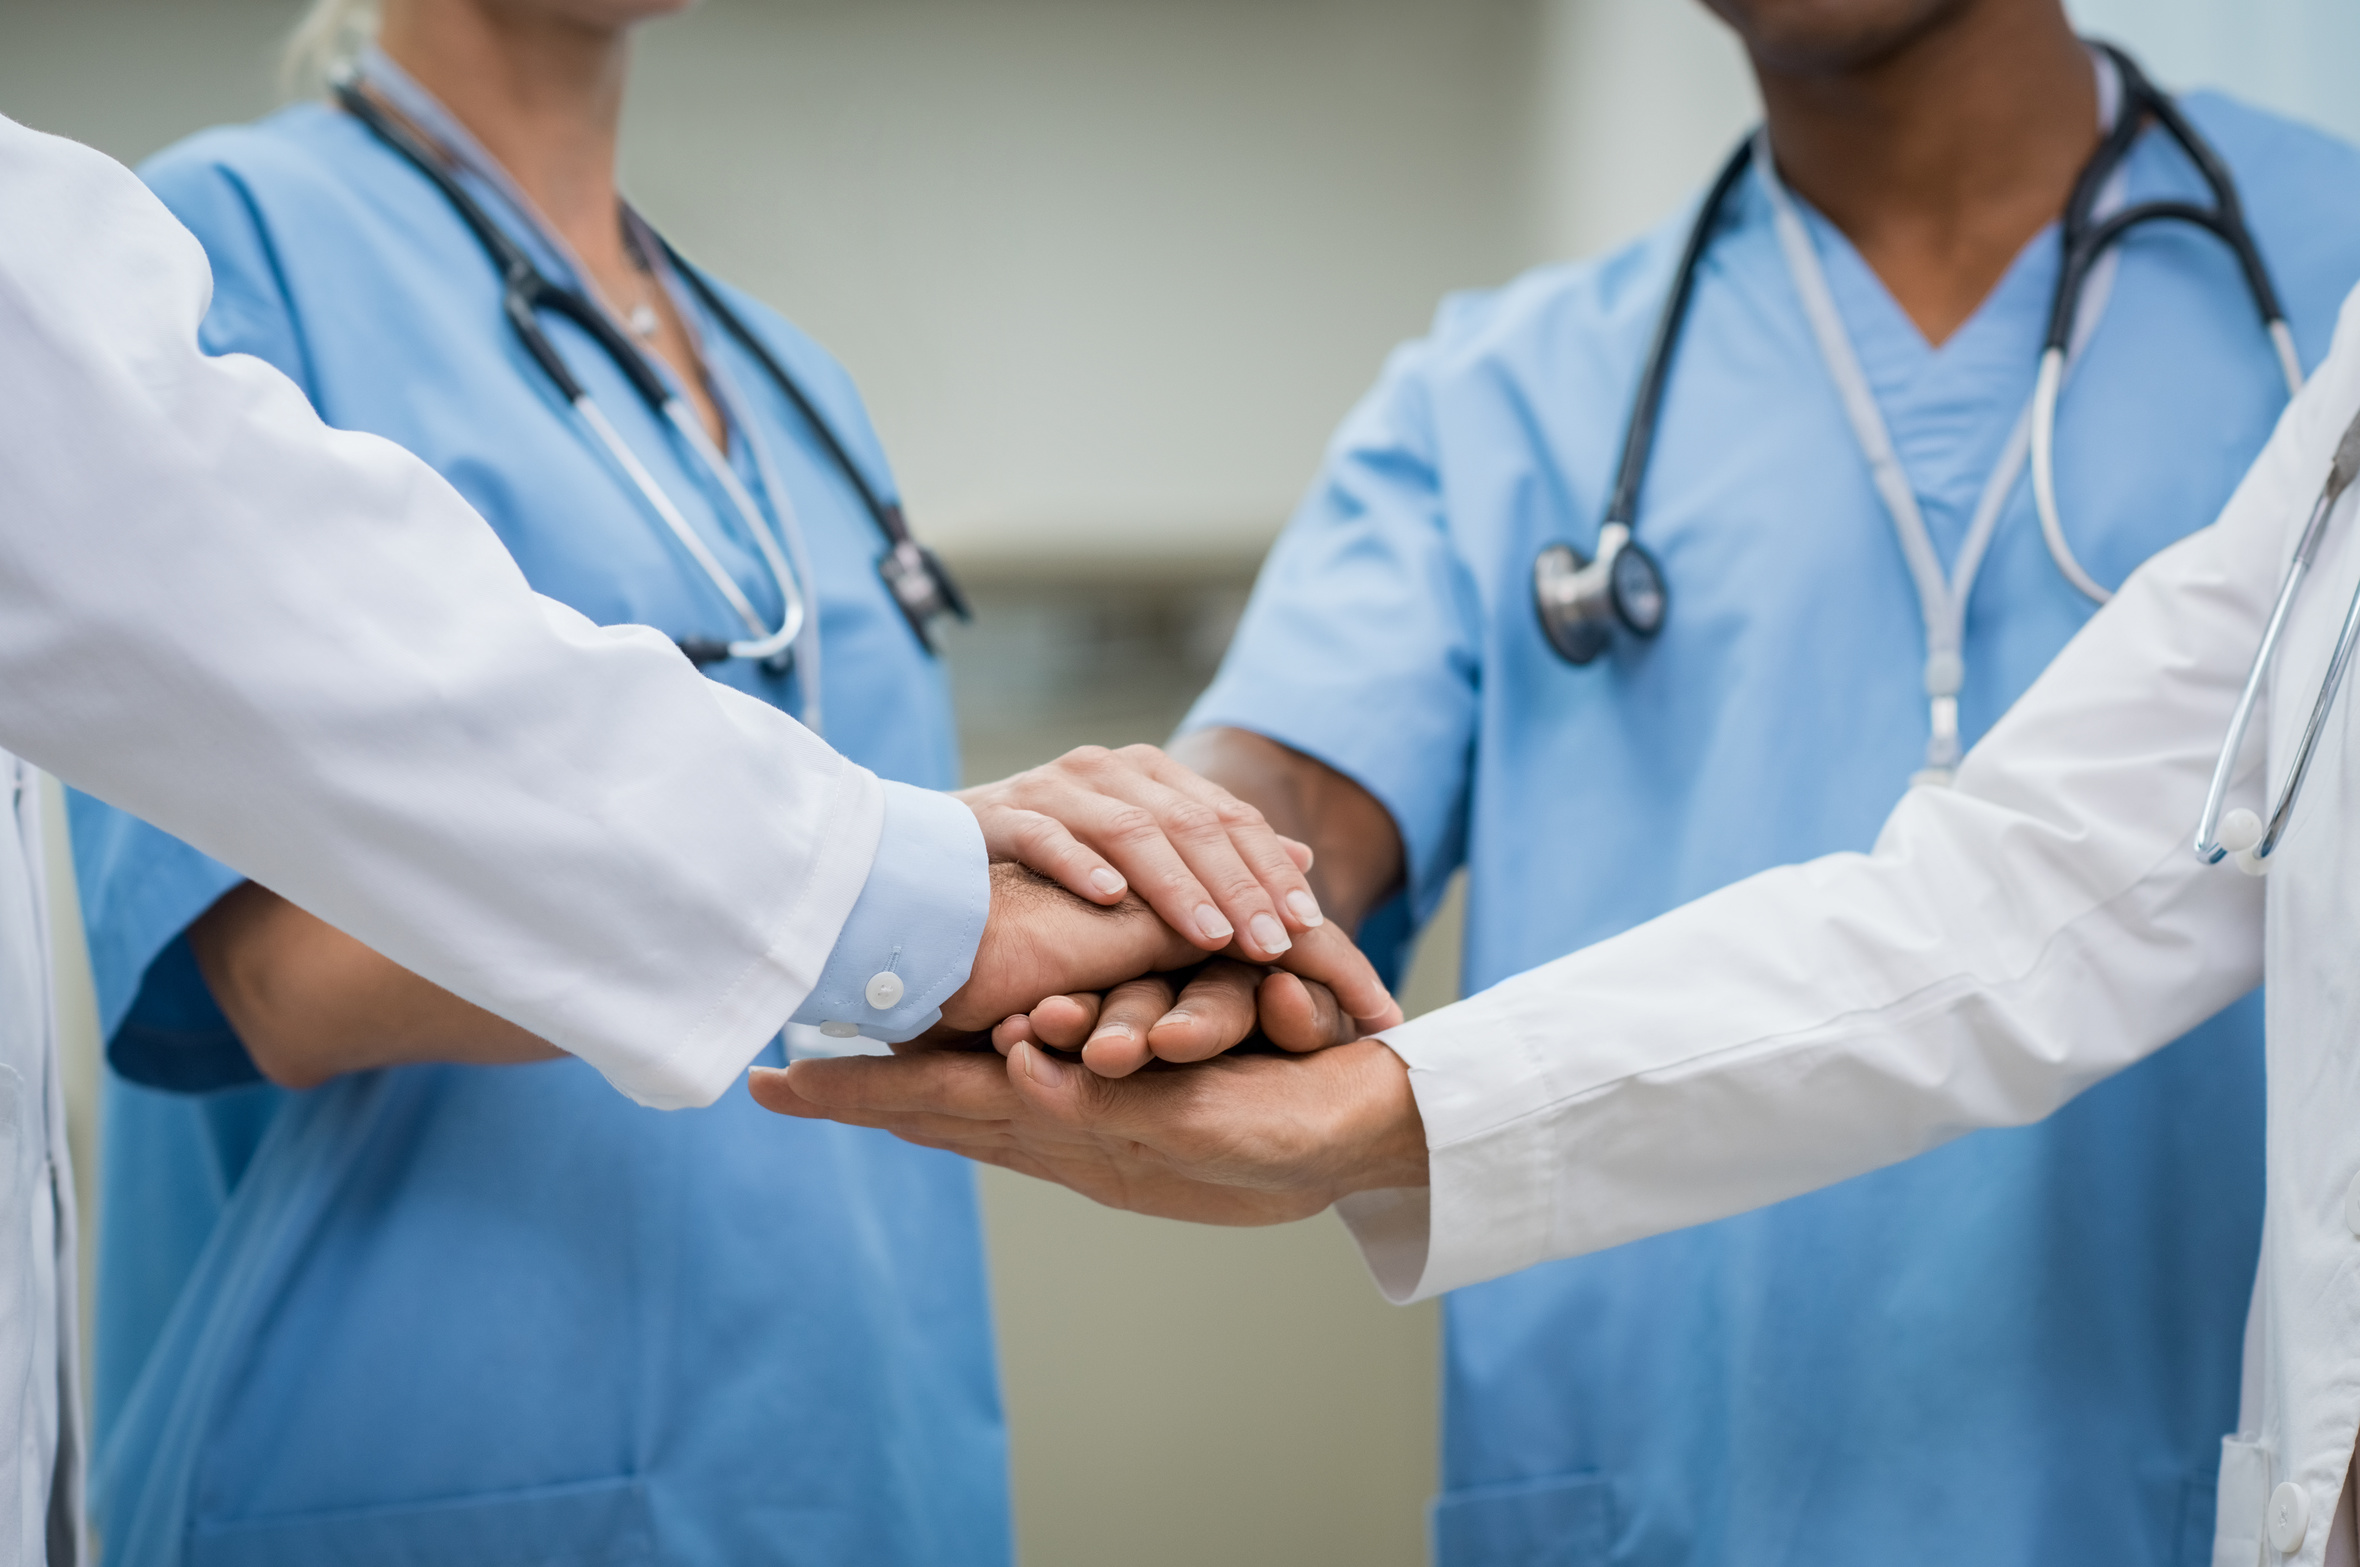 Role Play Helps Physicians Deliver Bad News Better